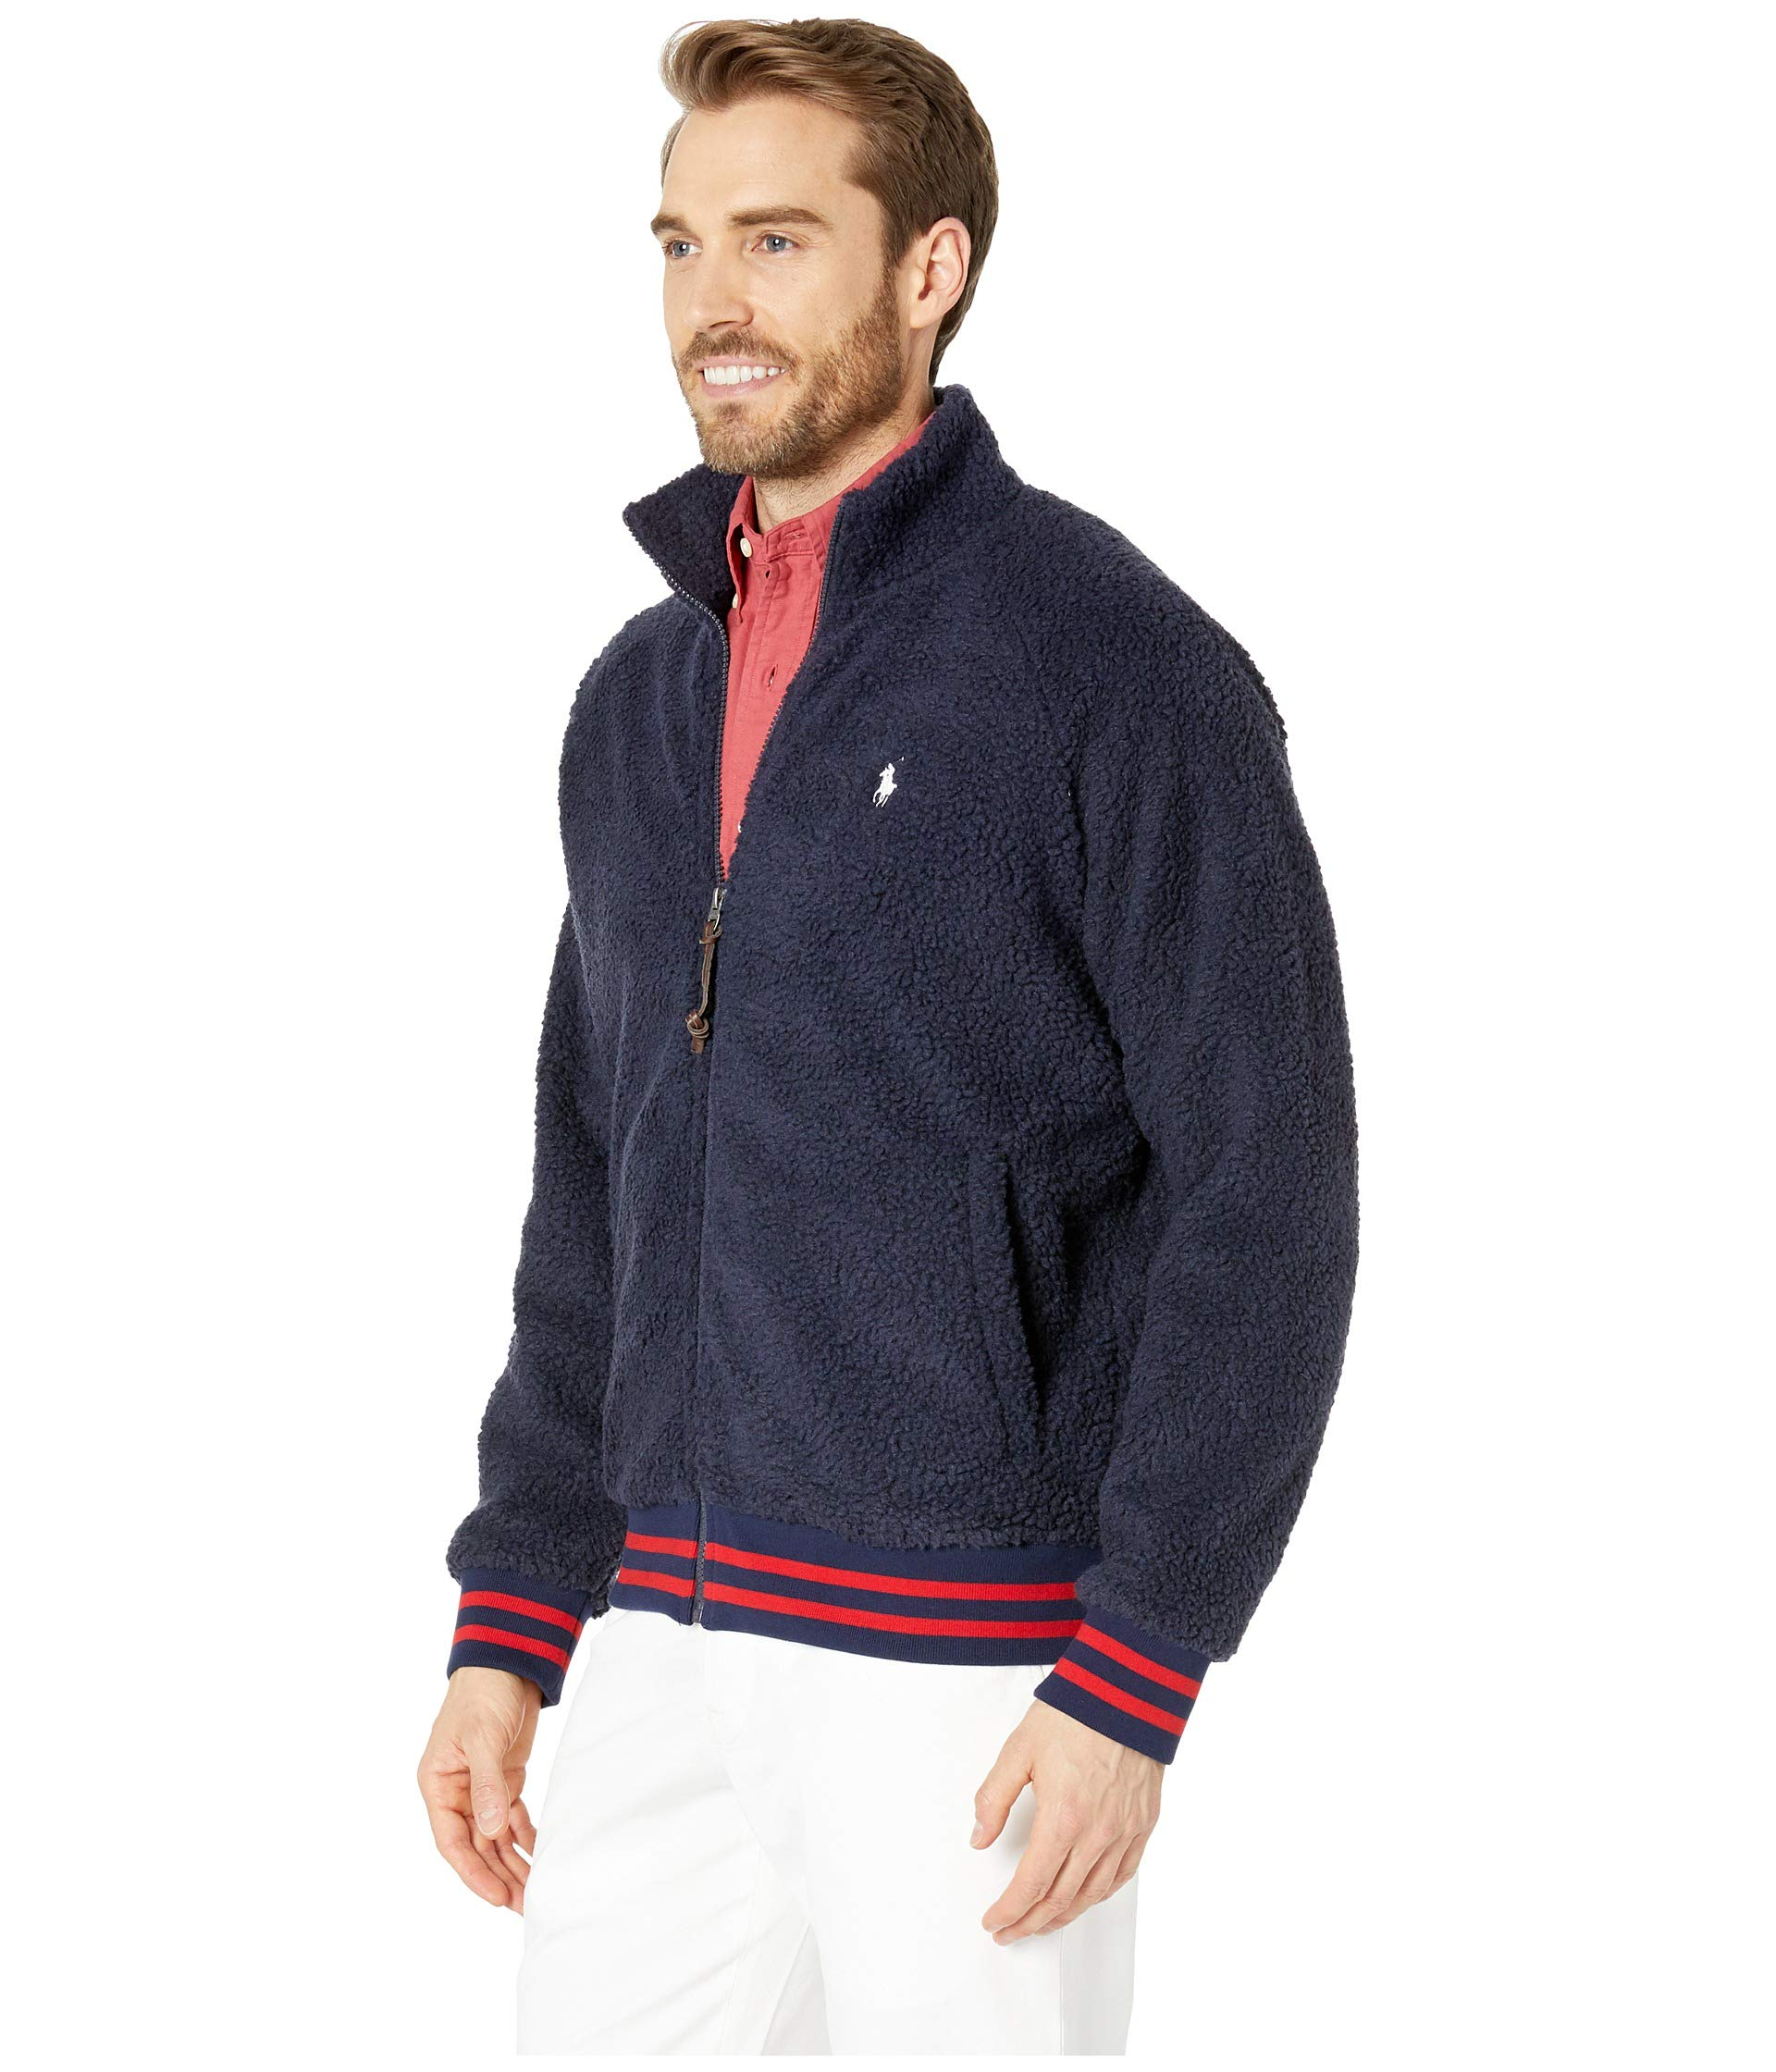 Knit Ralph Long Sherpa Polo Cruise Sleeve Navy Vintage Lauren xfndwBqY